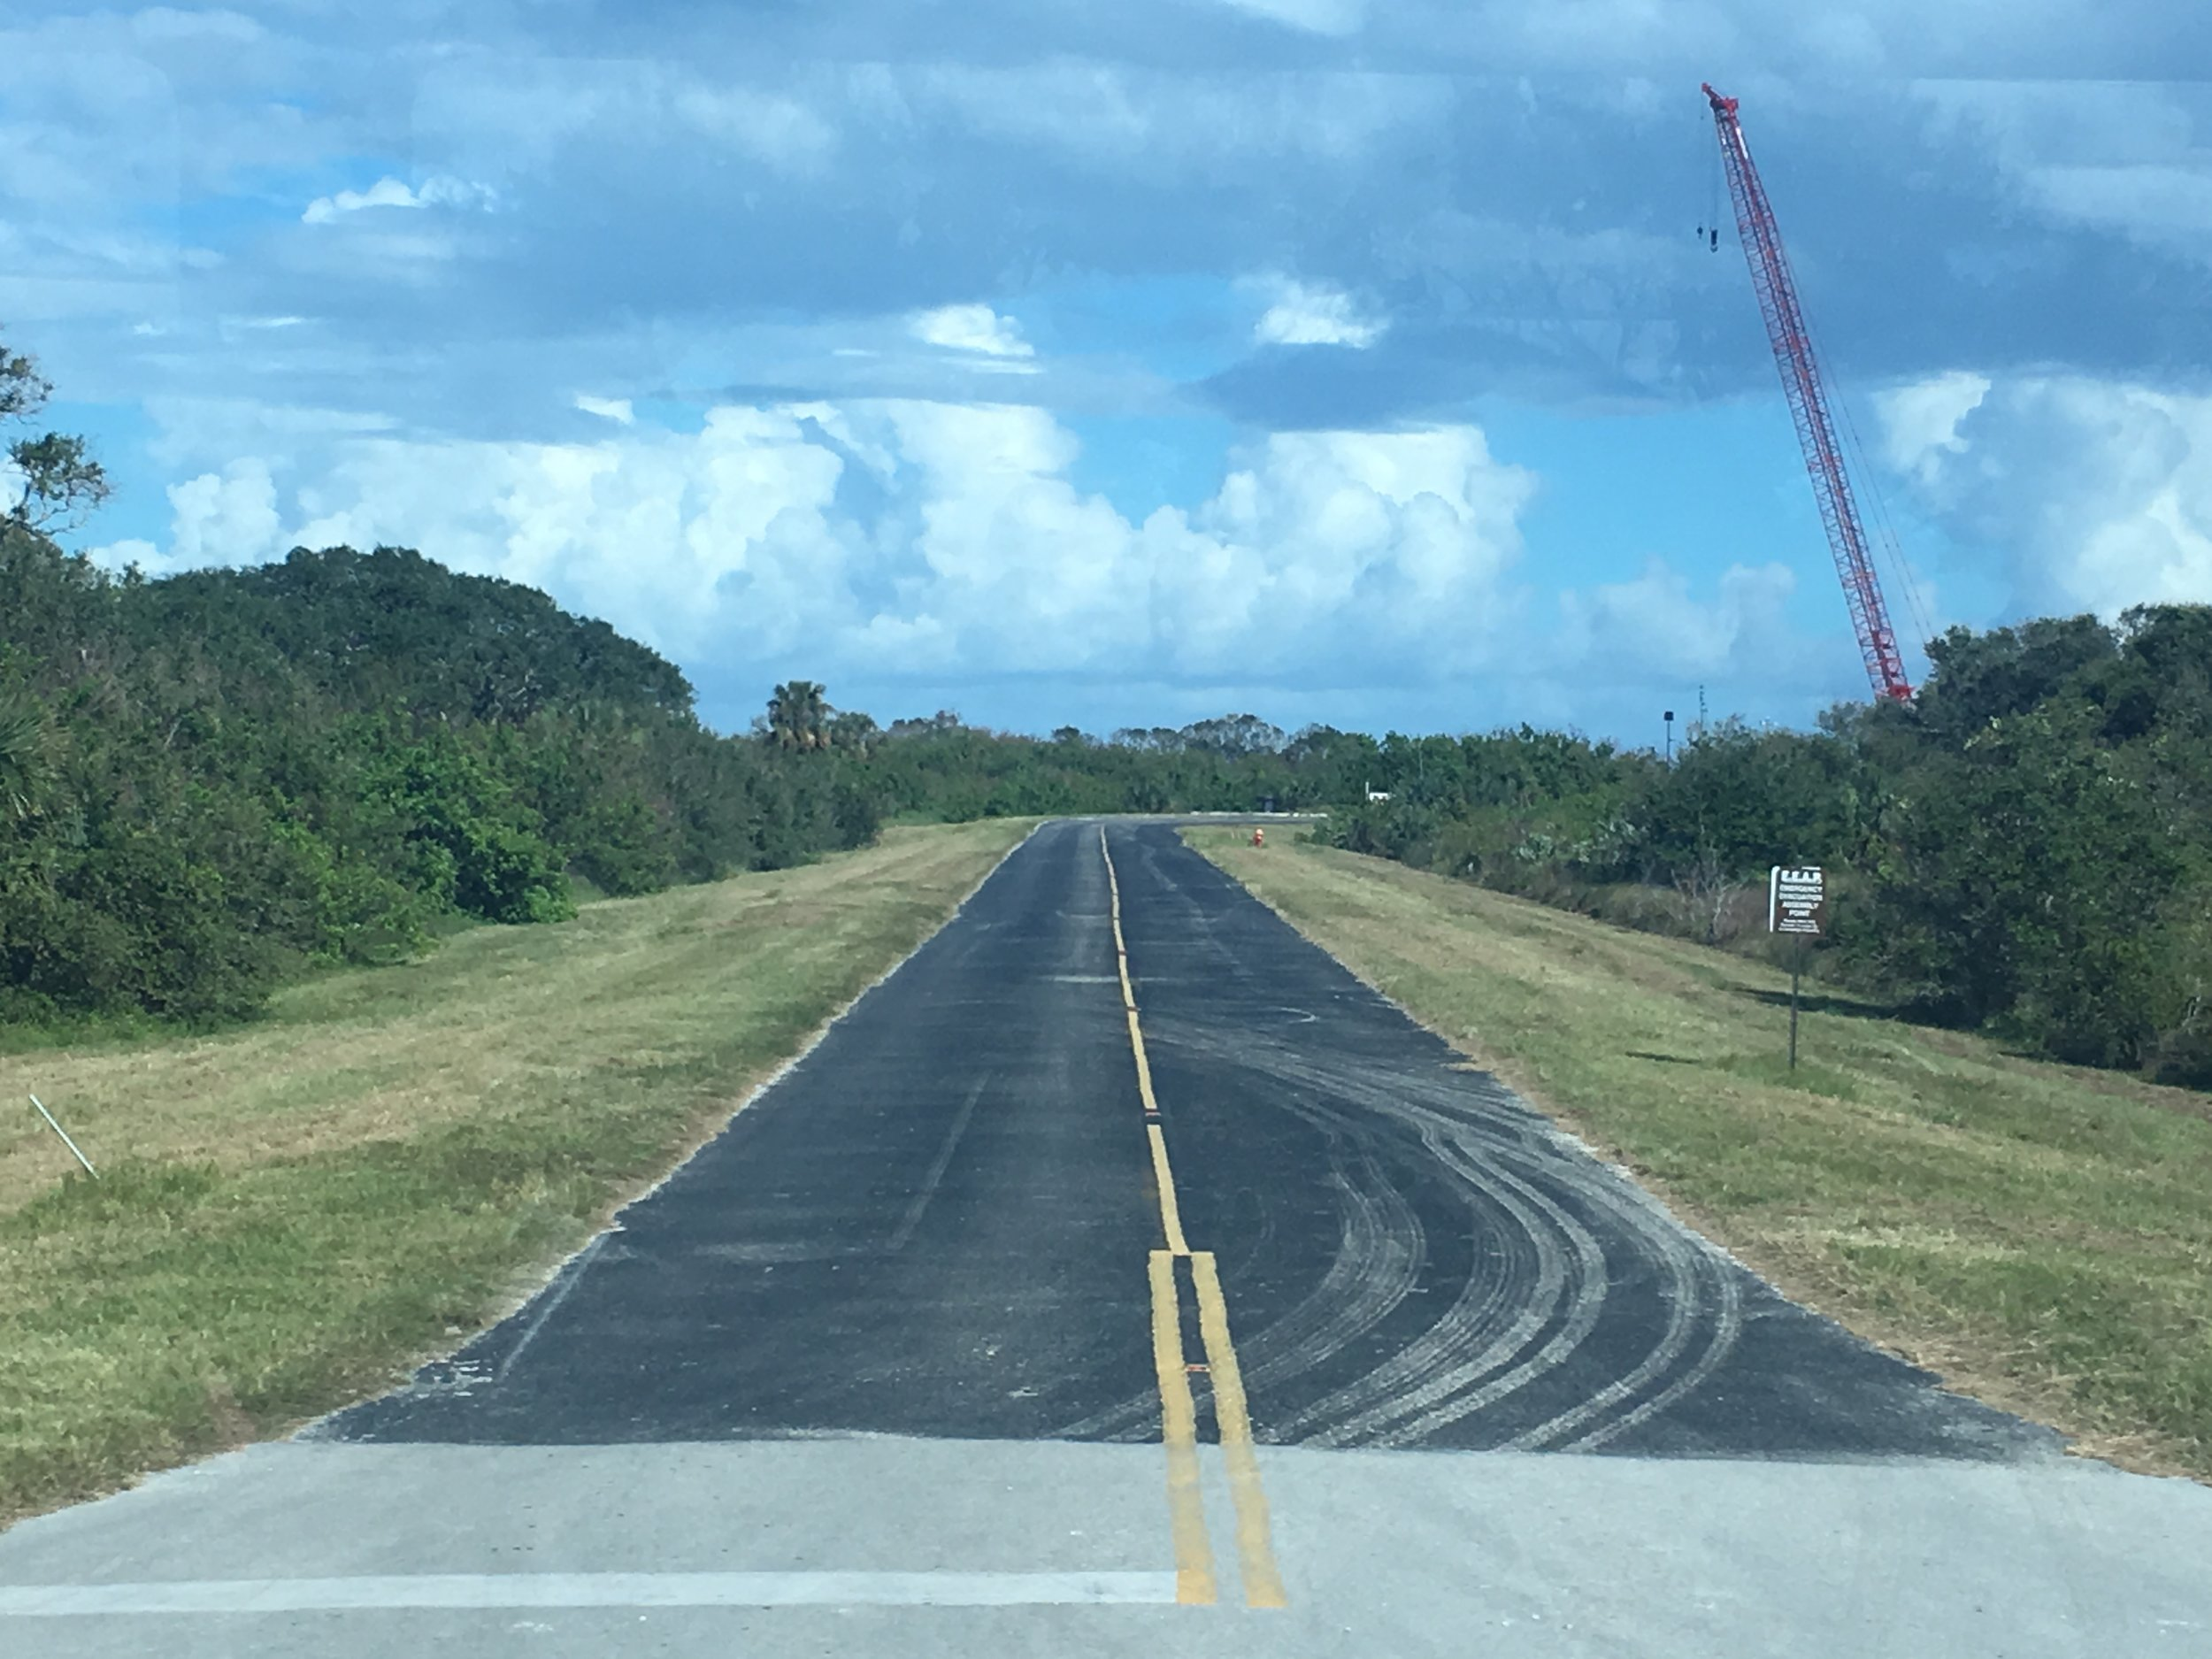 The road leading to SpaceX's Landing Zone 1 on Missile Row.